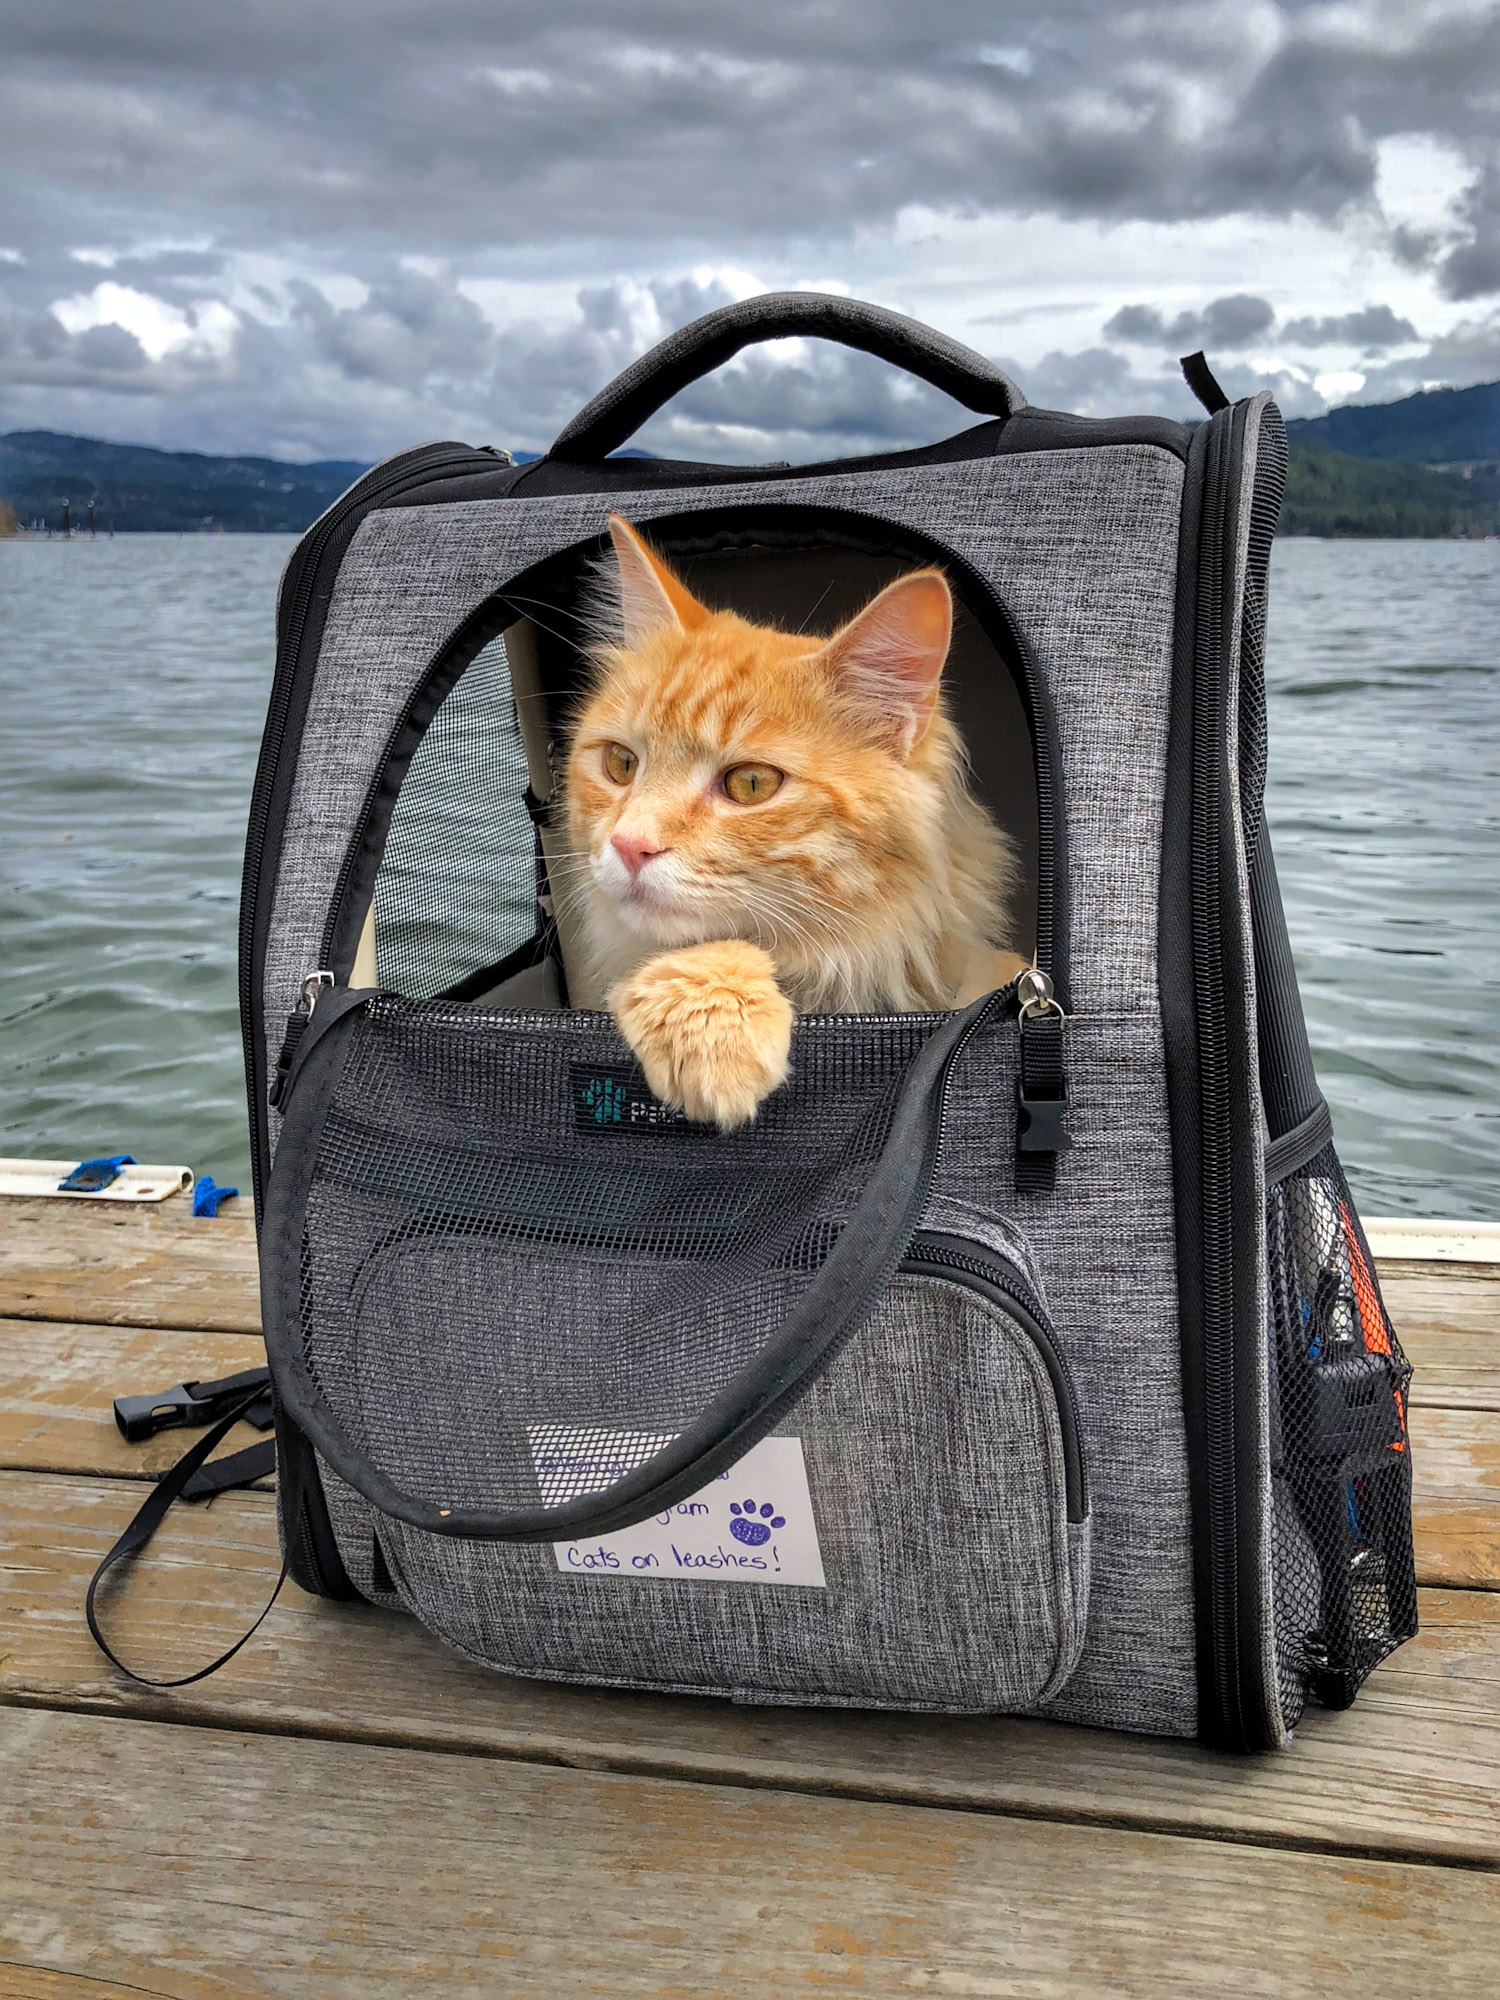 orange tabby peeks out of backpack